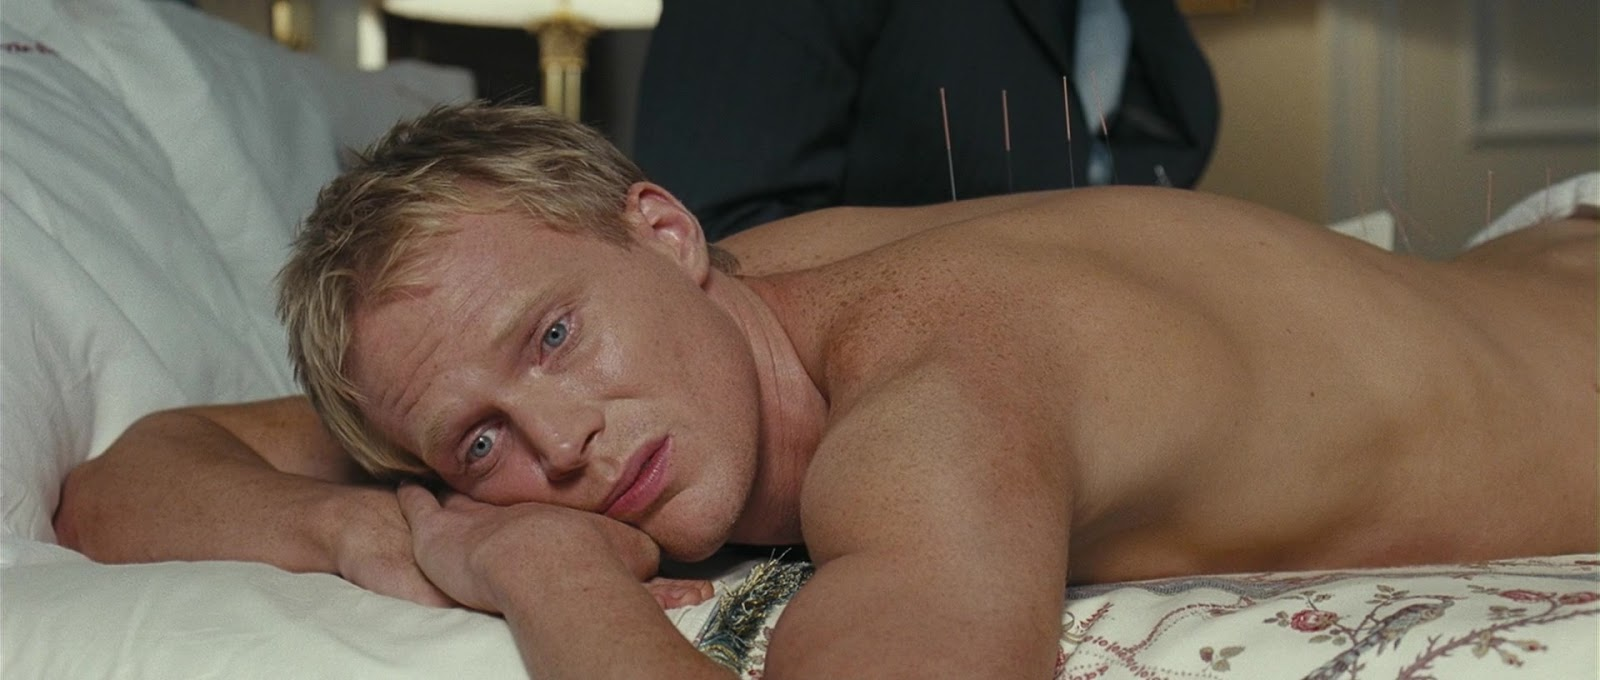 ausCAPS: Paul Bettany nude in Wimbledon